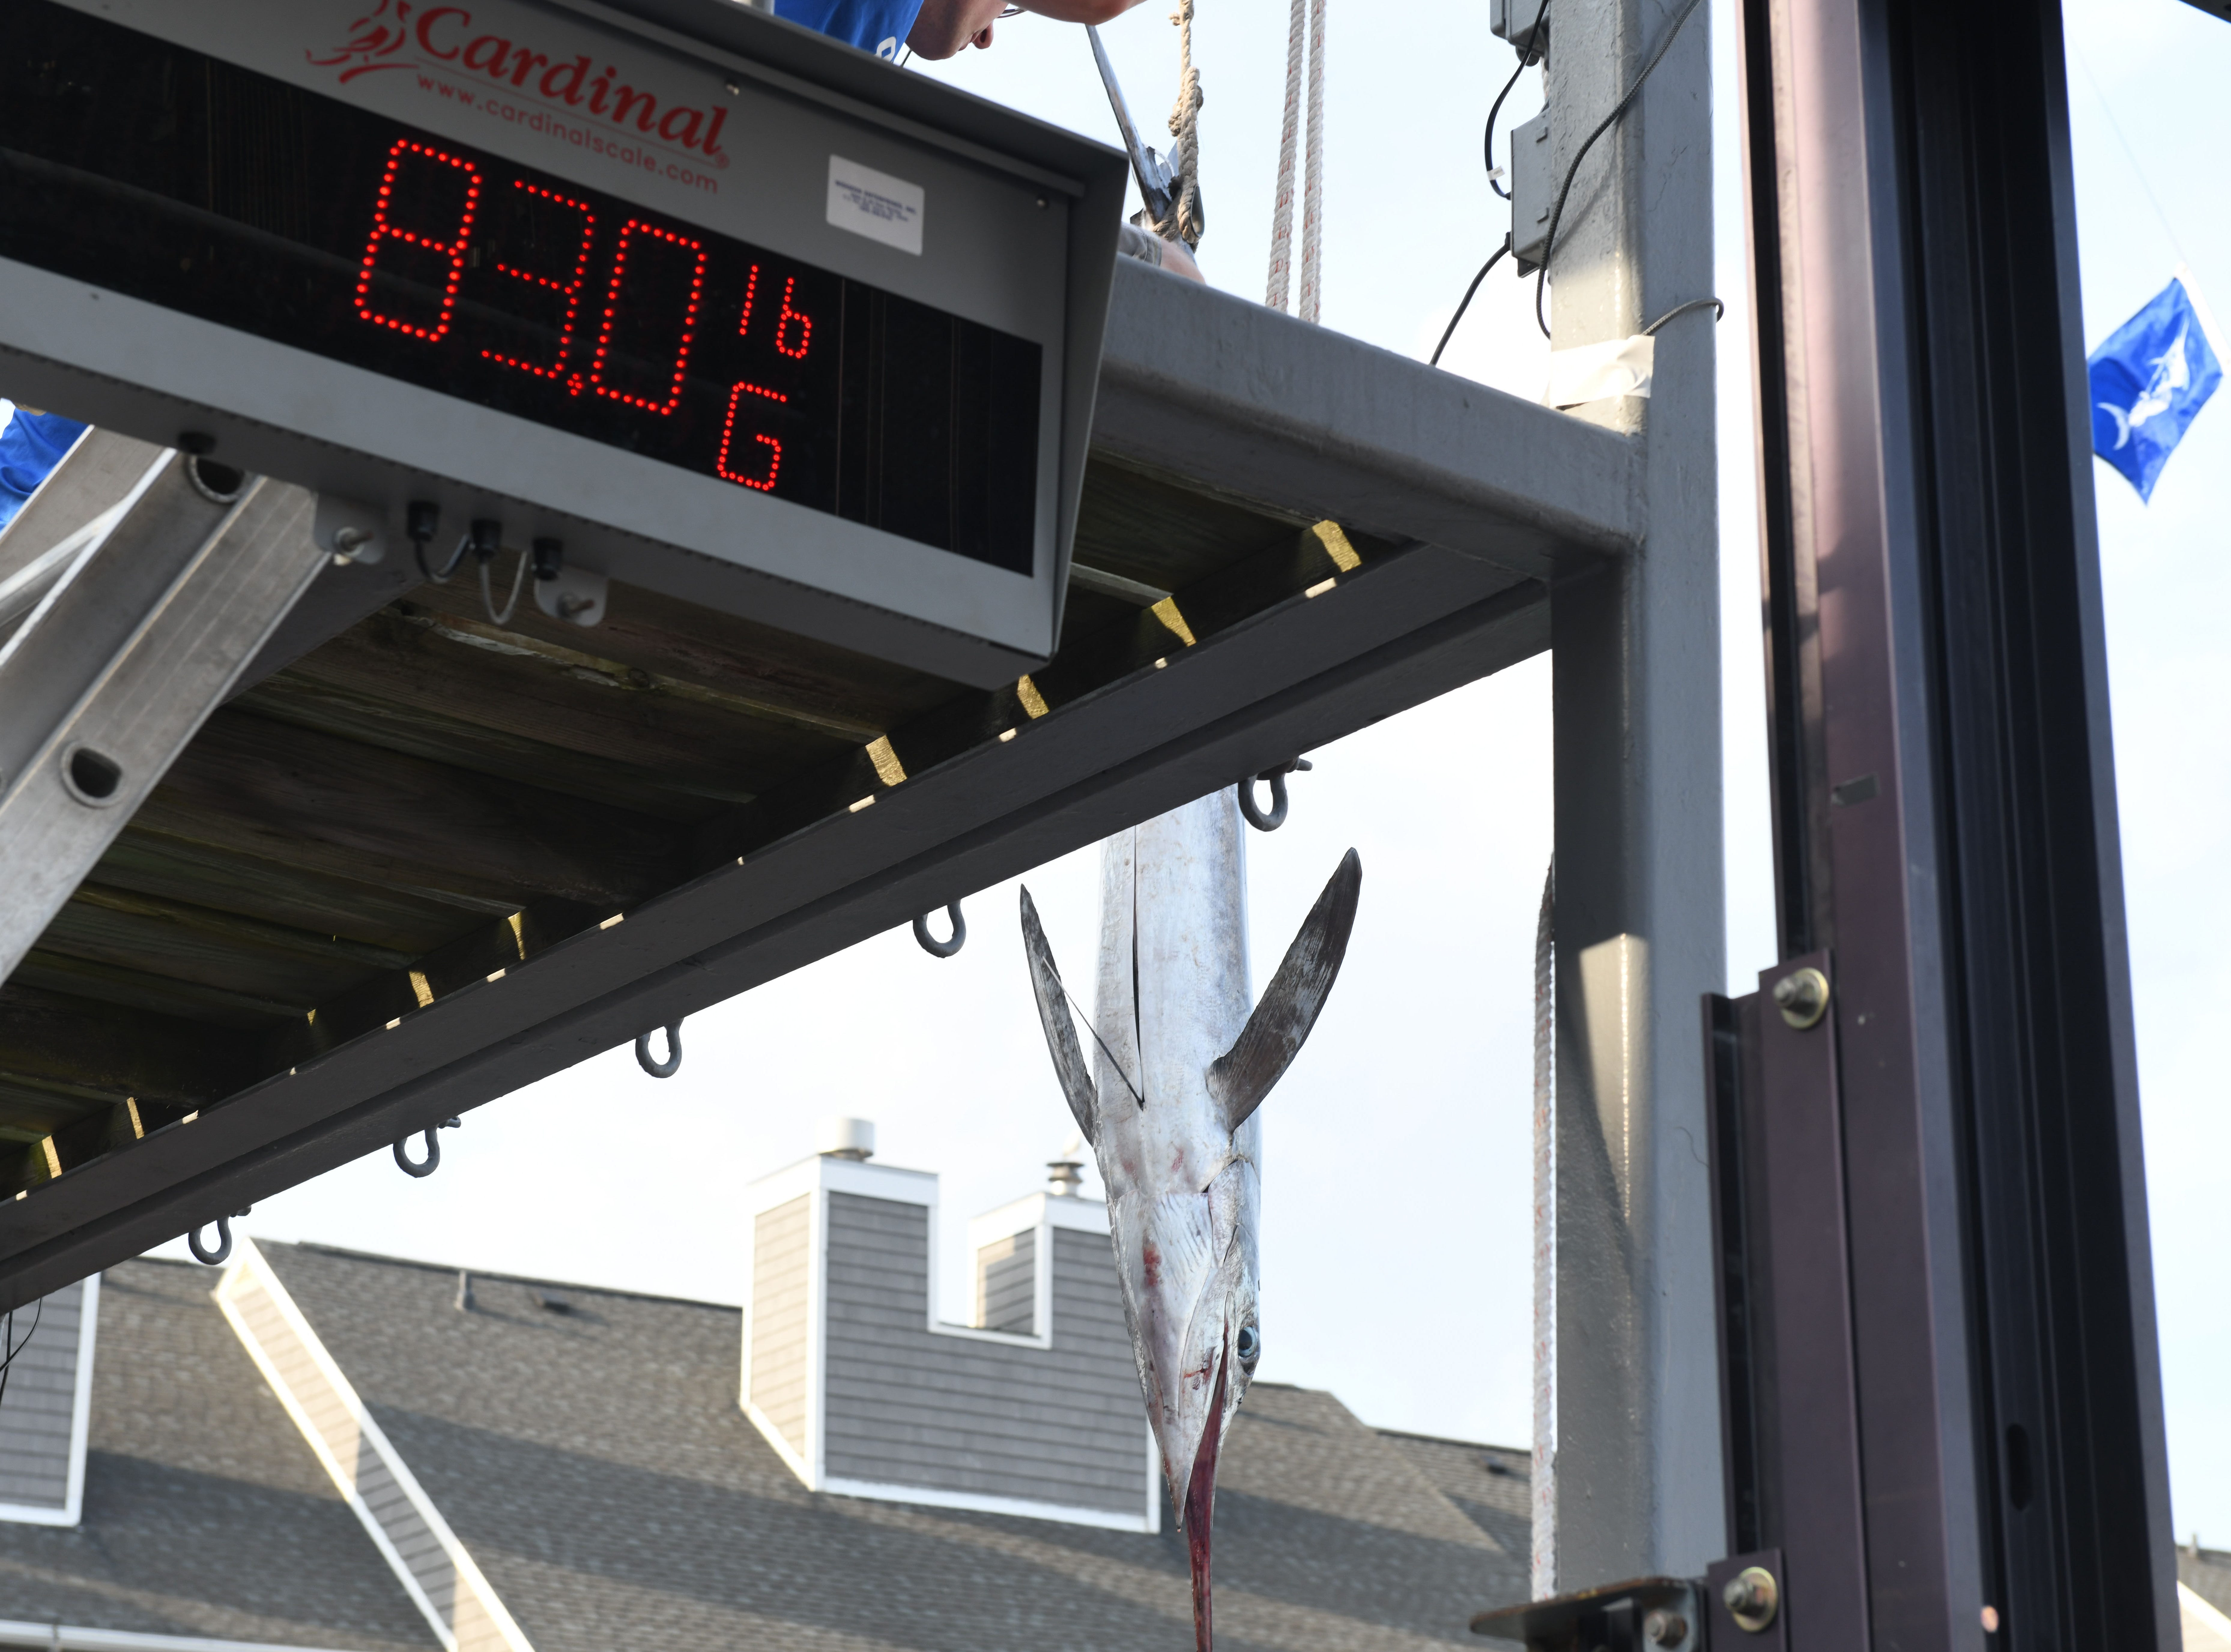 Angler Pascual Jimenez aboard the Weldor's Ark is now tied for first place with an 83 pound white marlin that was weighed in during the 45th Annual White Marlin Open in Ocean City, Md. on Friday, August 10, 2018.